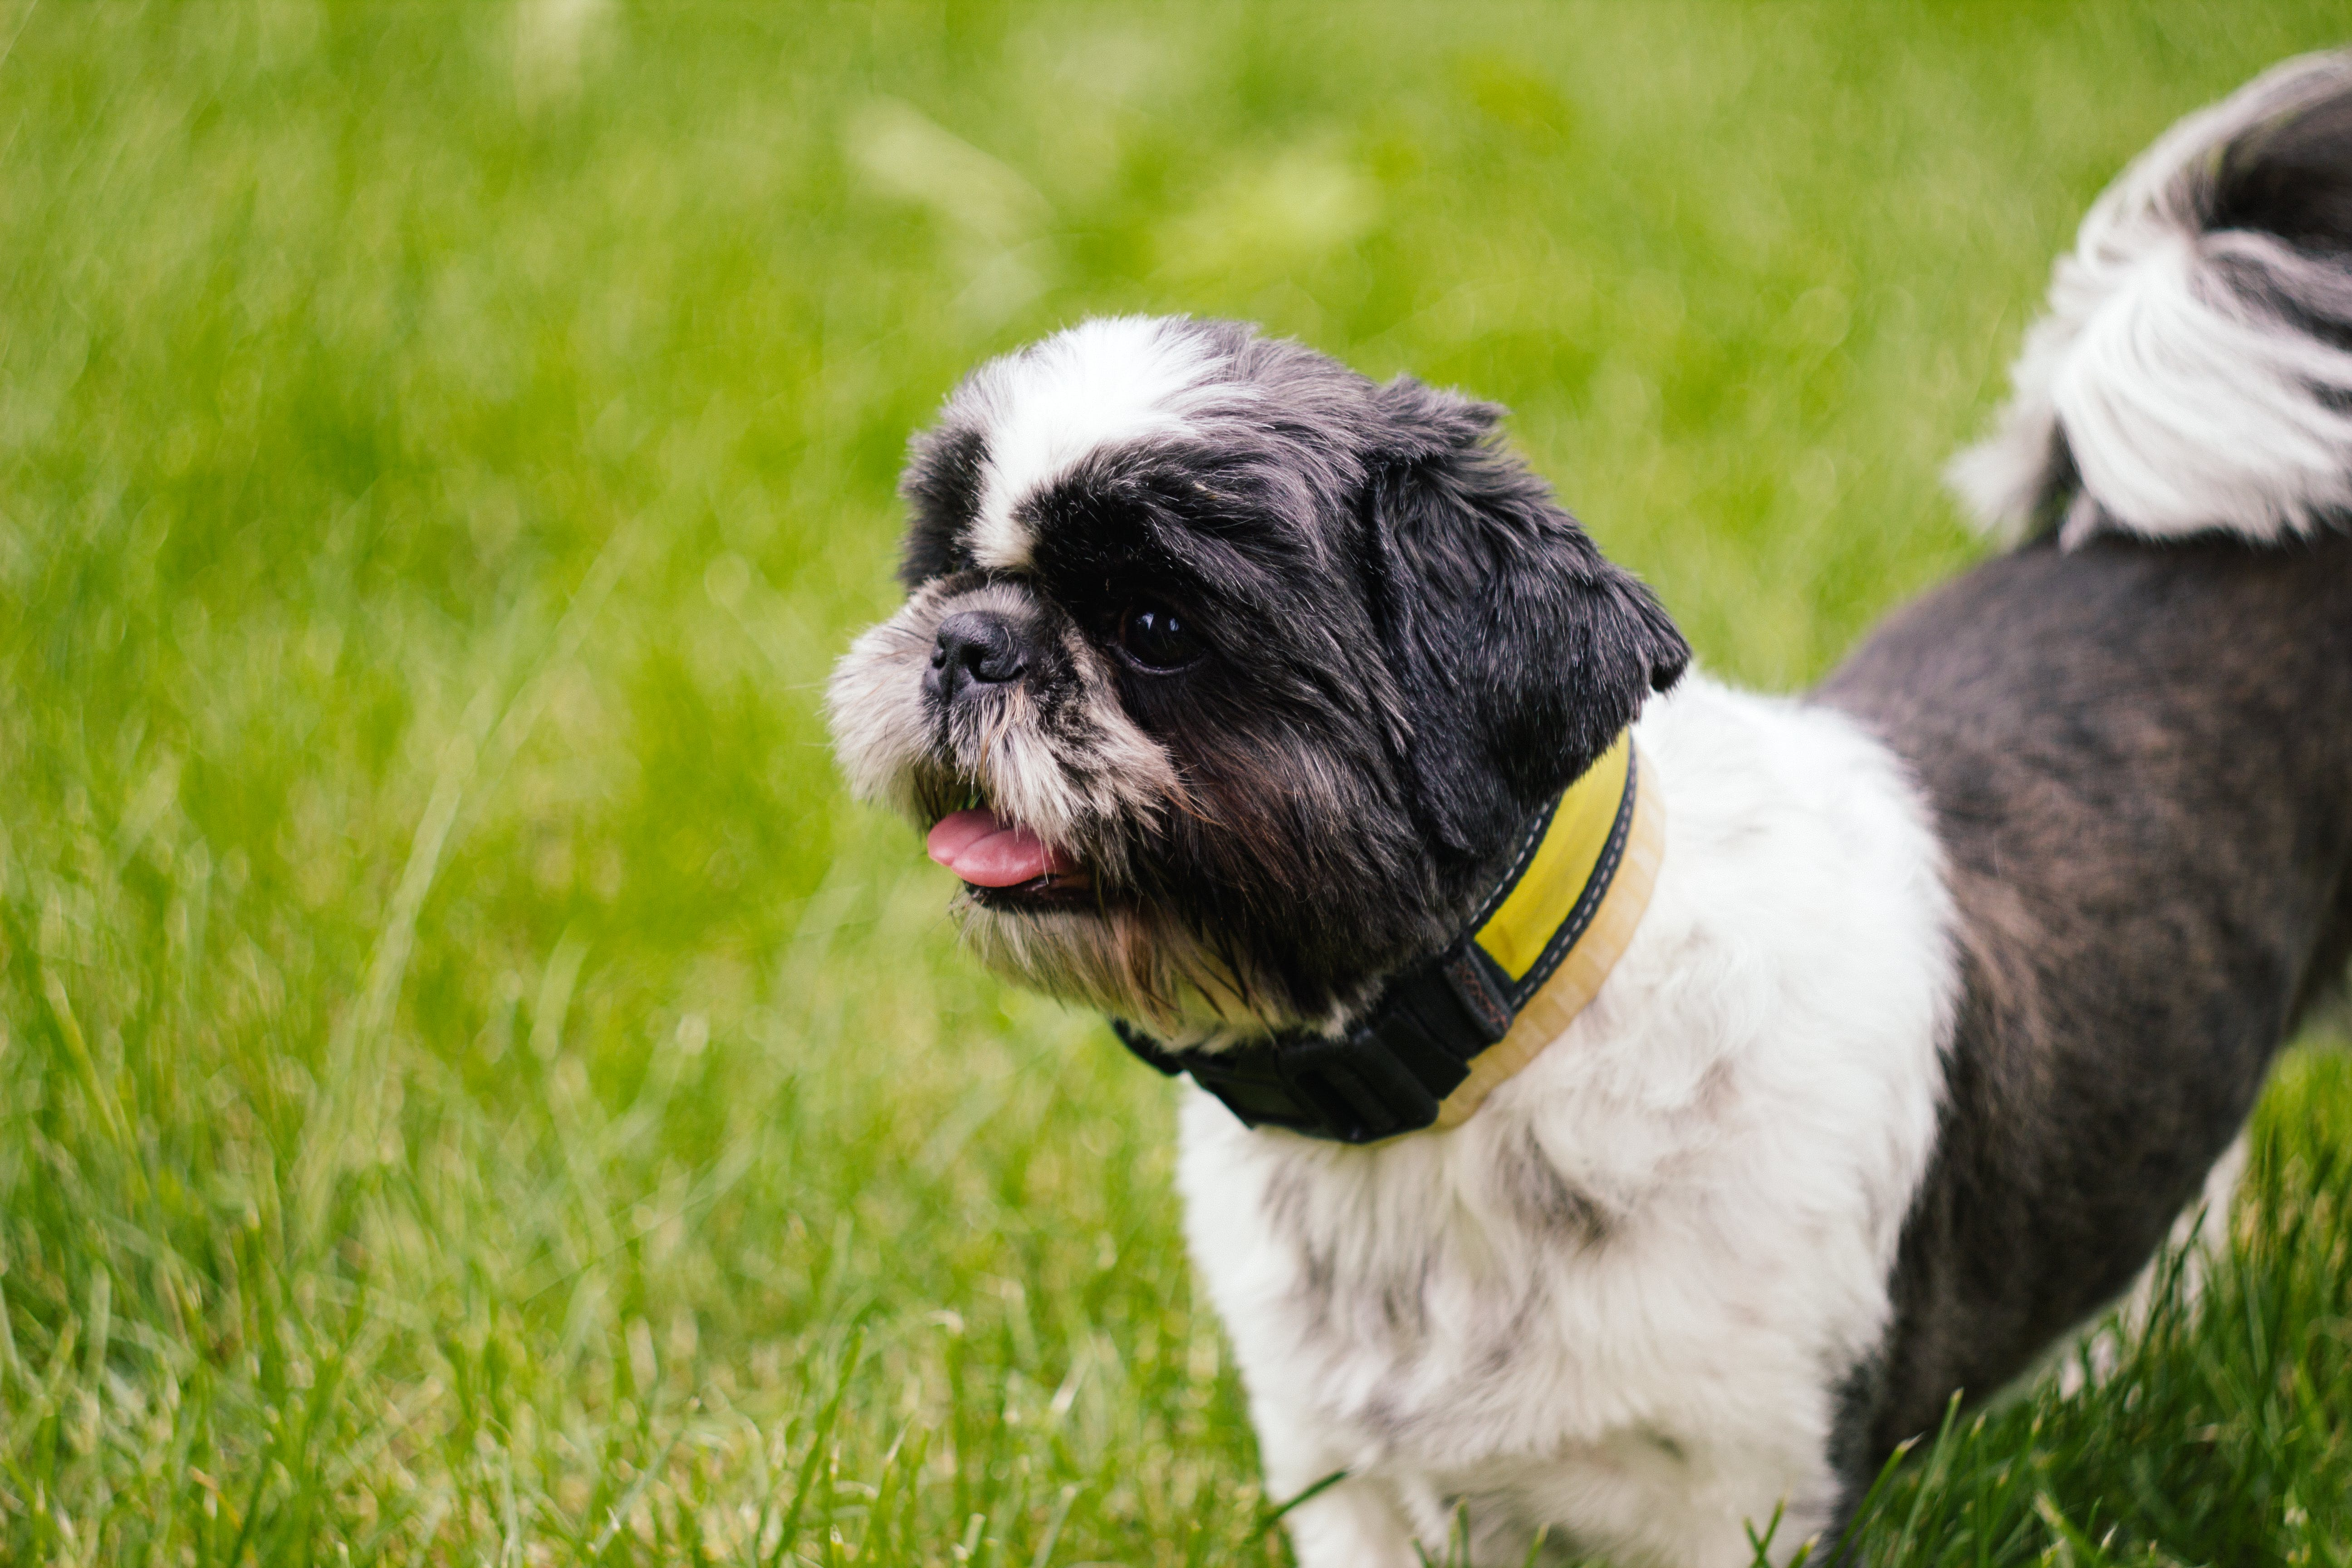 Black and White Short Hair Shih Tzu Dog on Green Grass